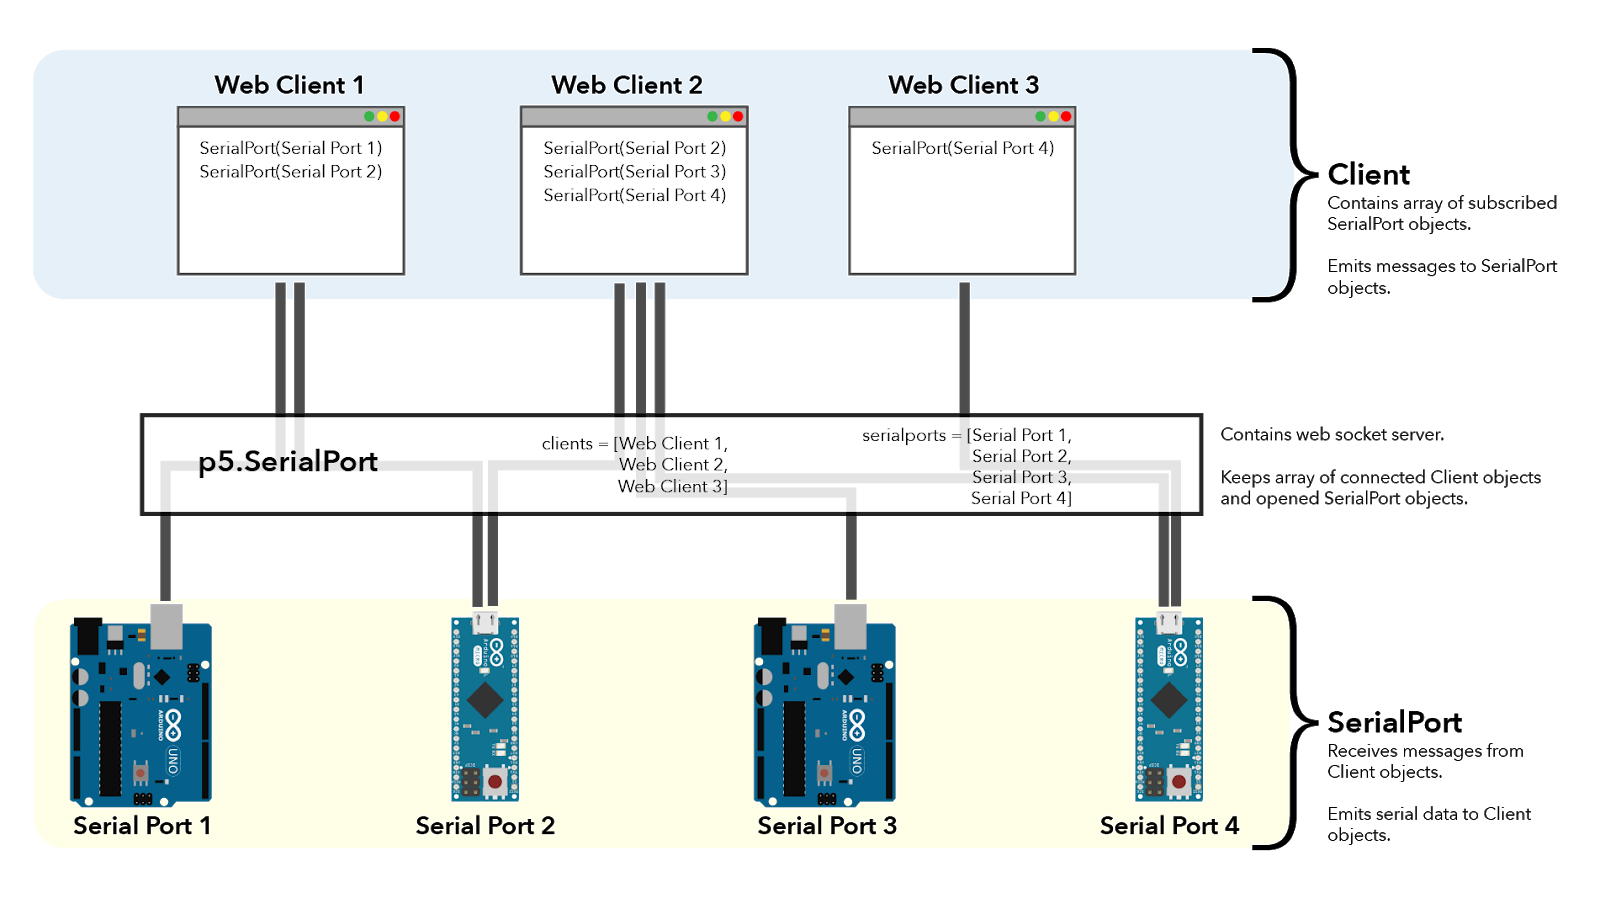 3 instances of web clients are shown to have subscribed to different varieties of the 4 opened serial ports shown at bottom.